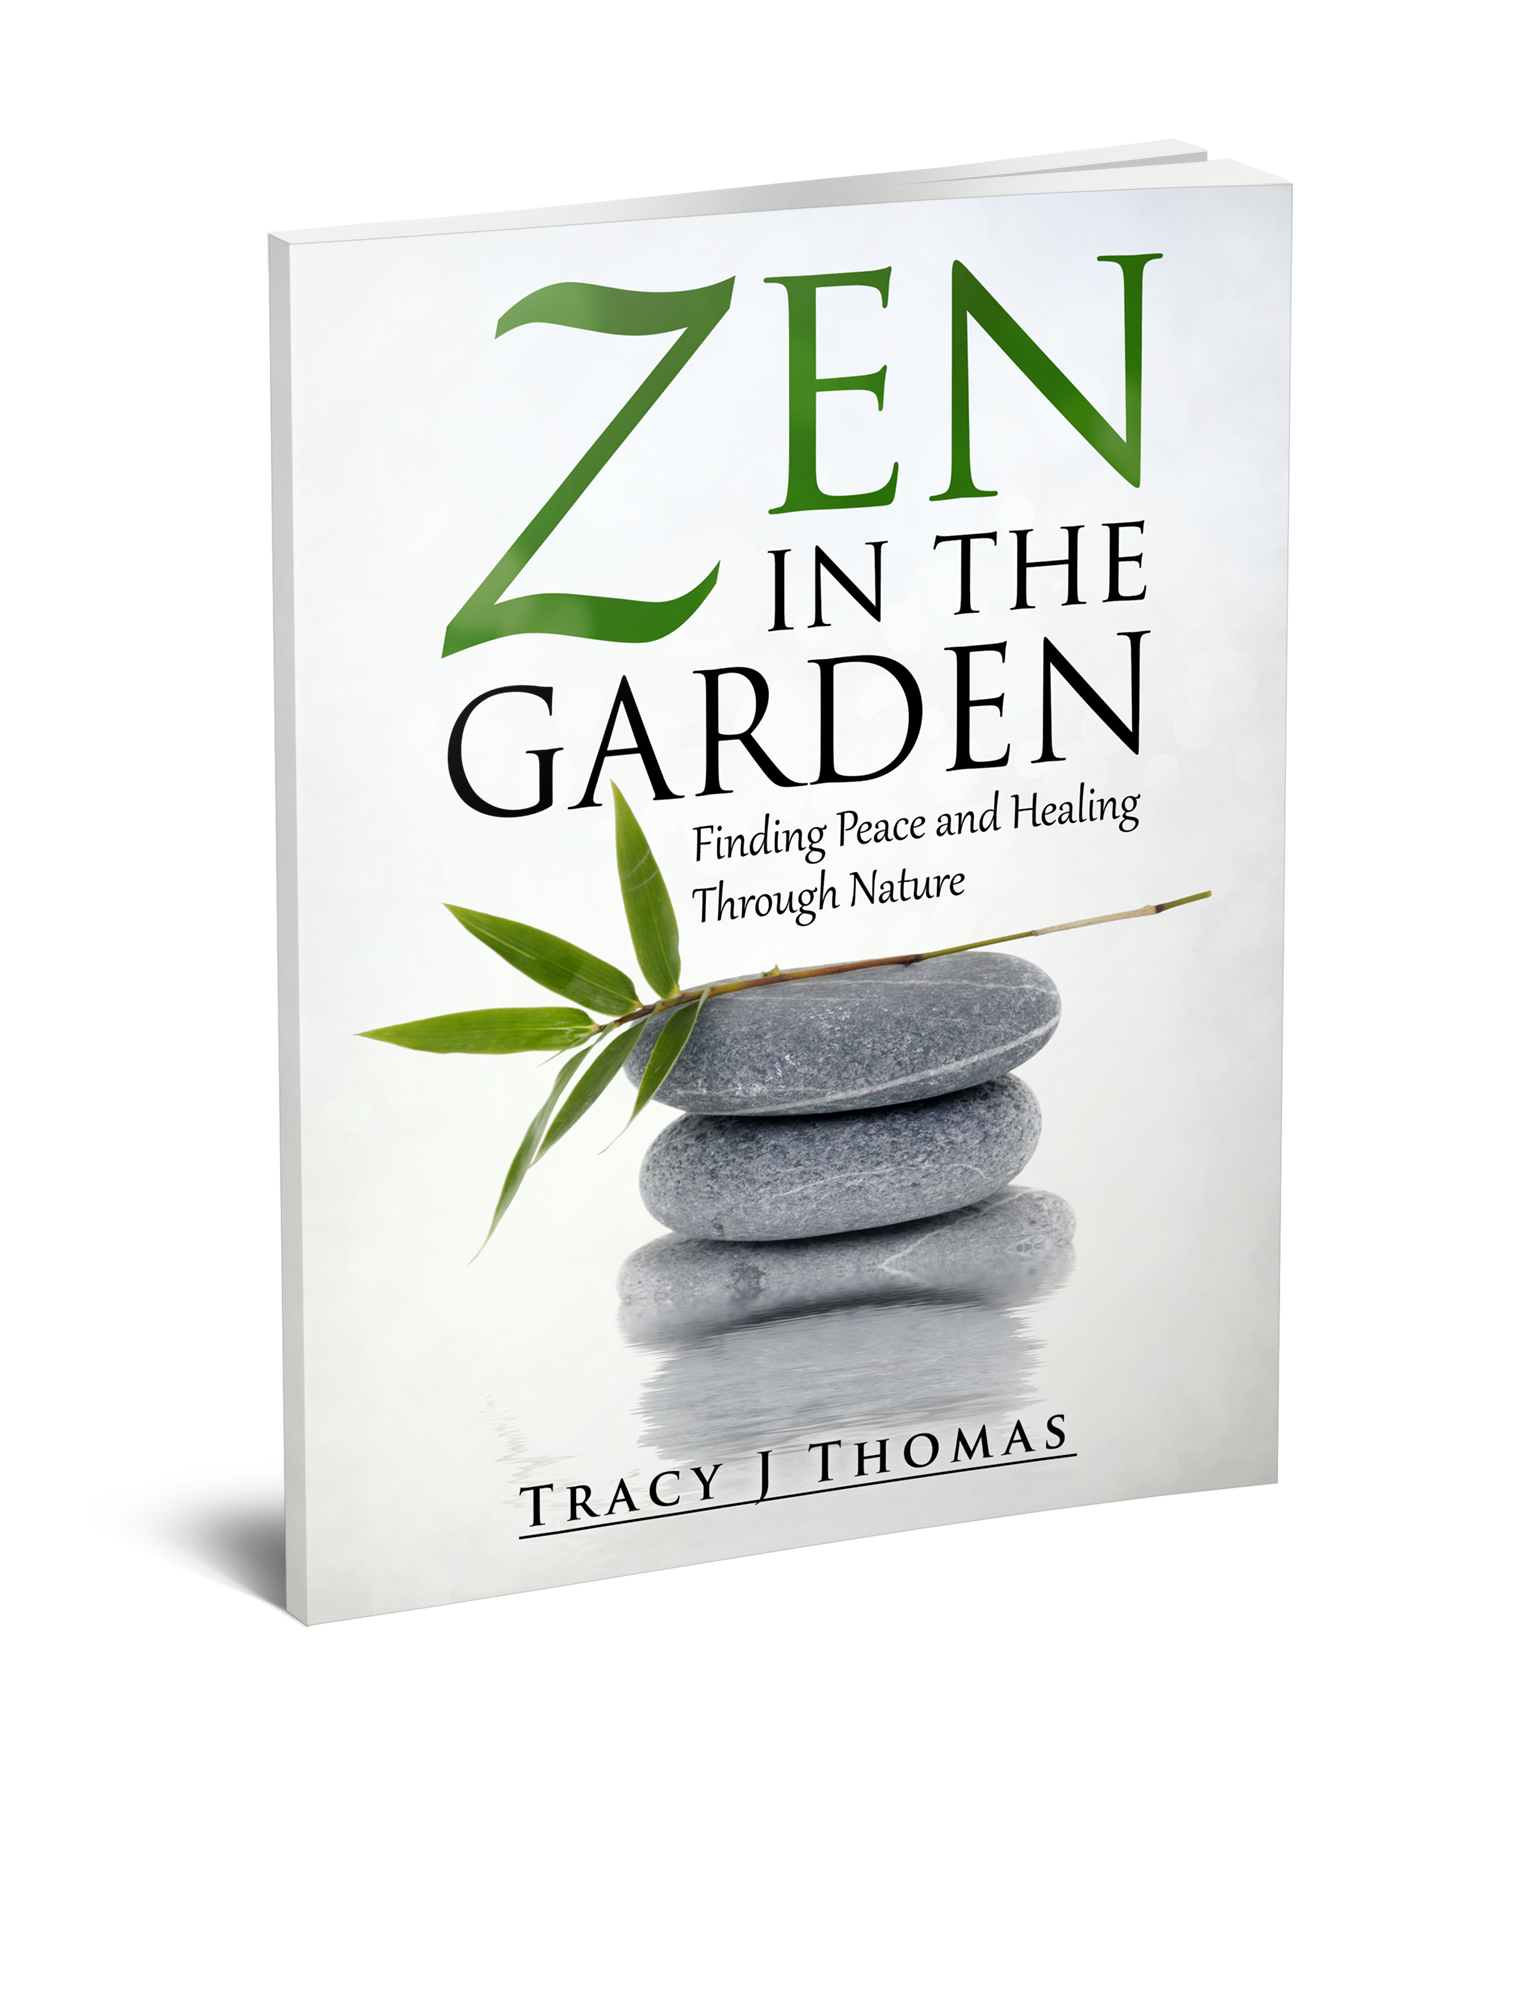 Gardening a thousand words you can download a free kindle version of zen in the garden today and tomorrow only on amazon here is the link to learn more about the book and to grab fandeluxe Choice Image